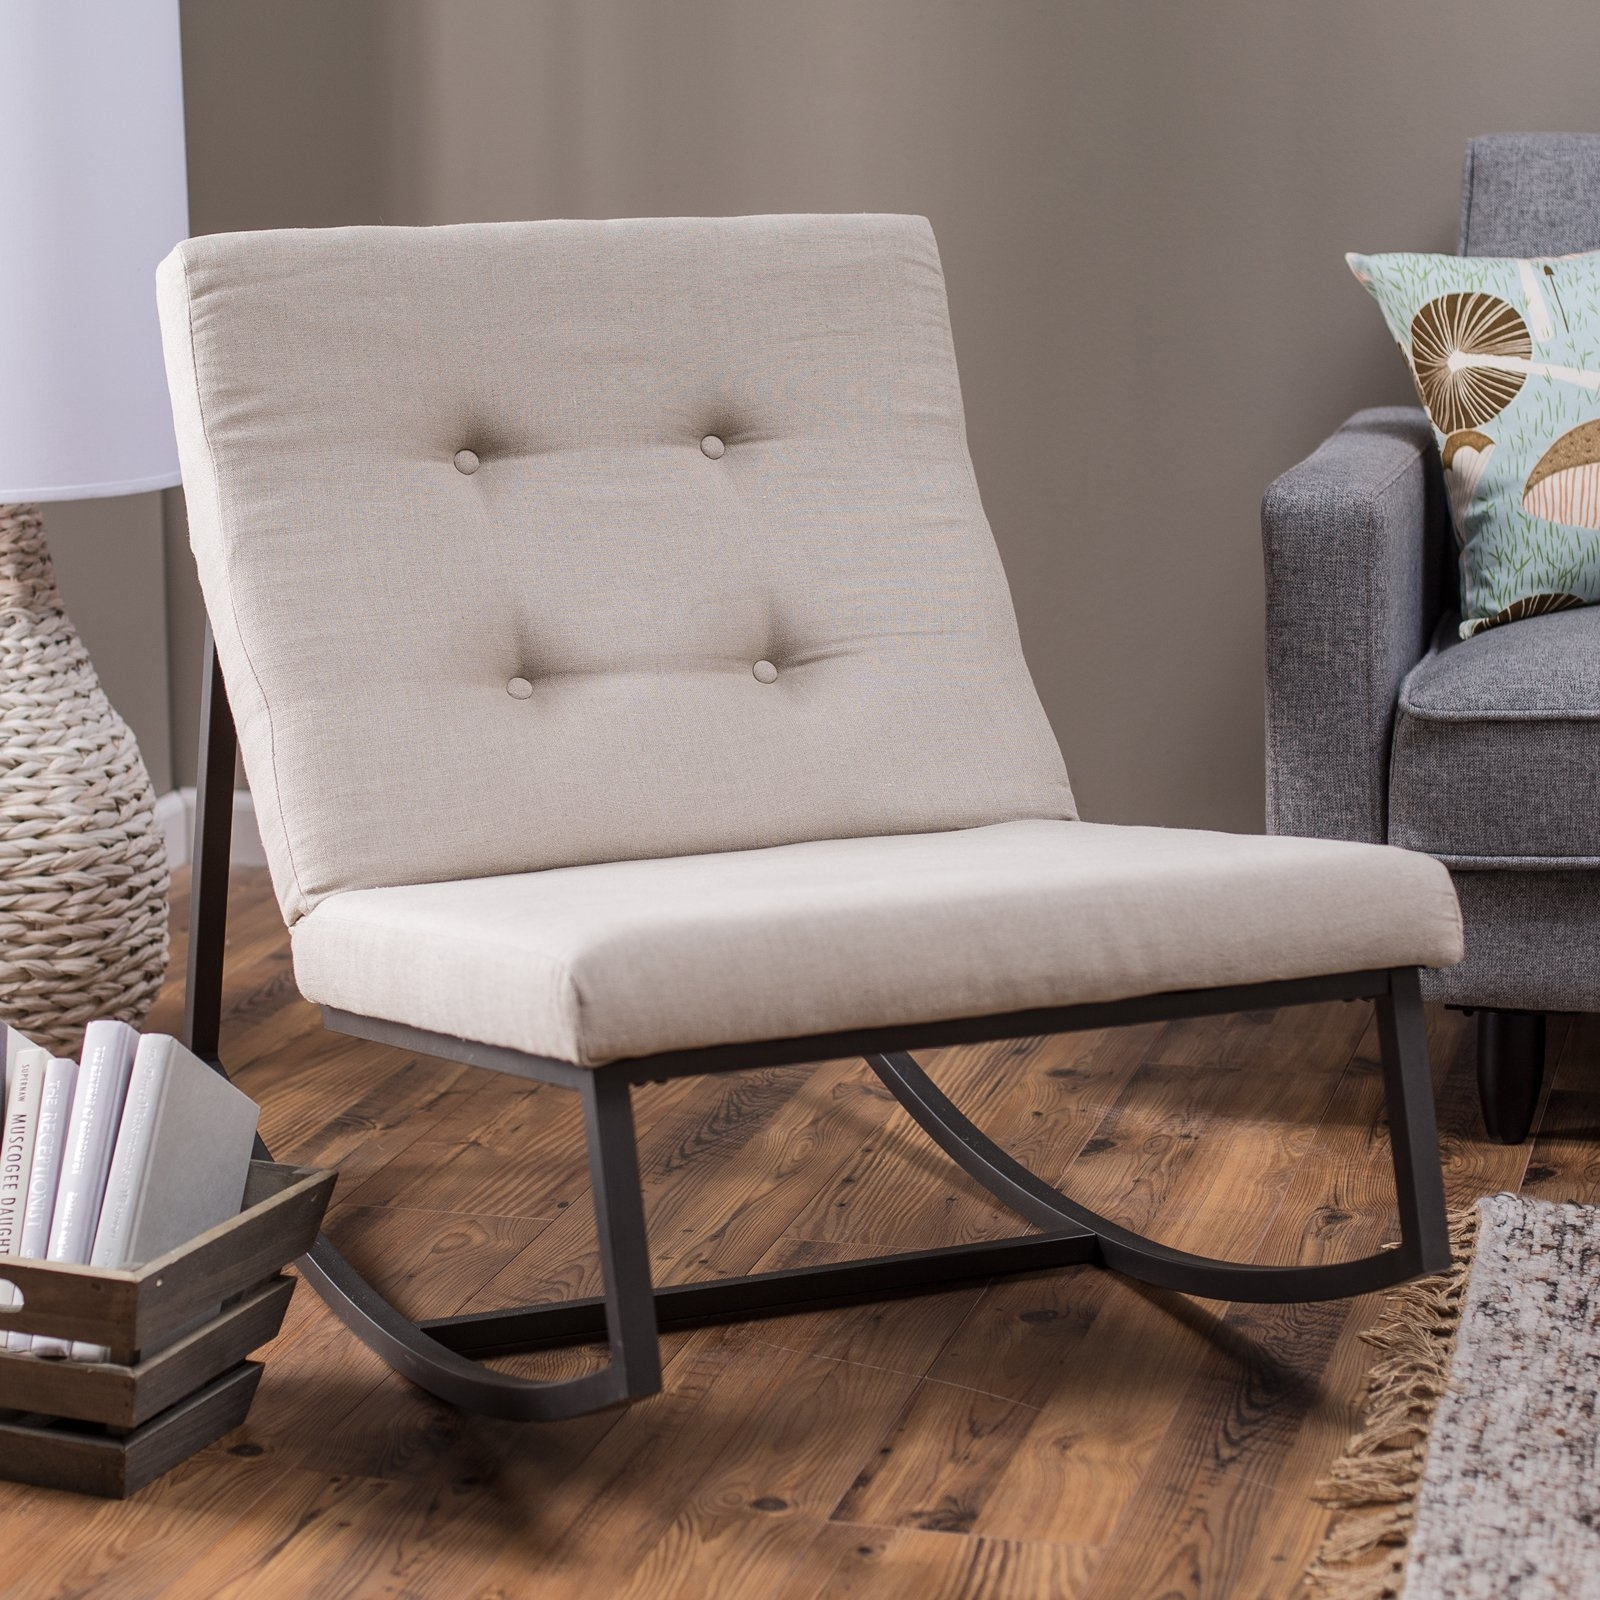 Belham Living Grayson Tufted Rocking Chair | Hayneedle Regarding Rocking Chairs For Living Room (#1 of 15)